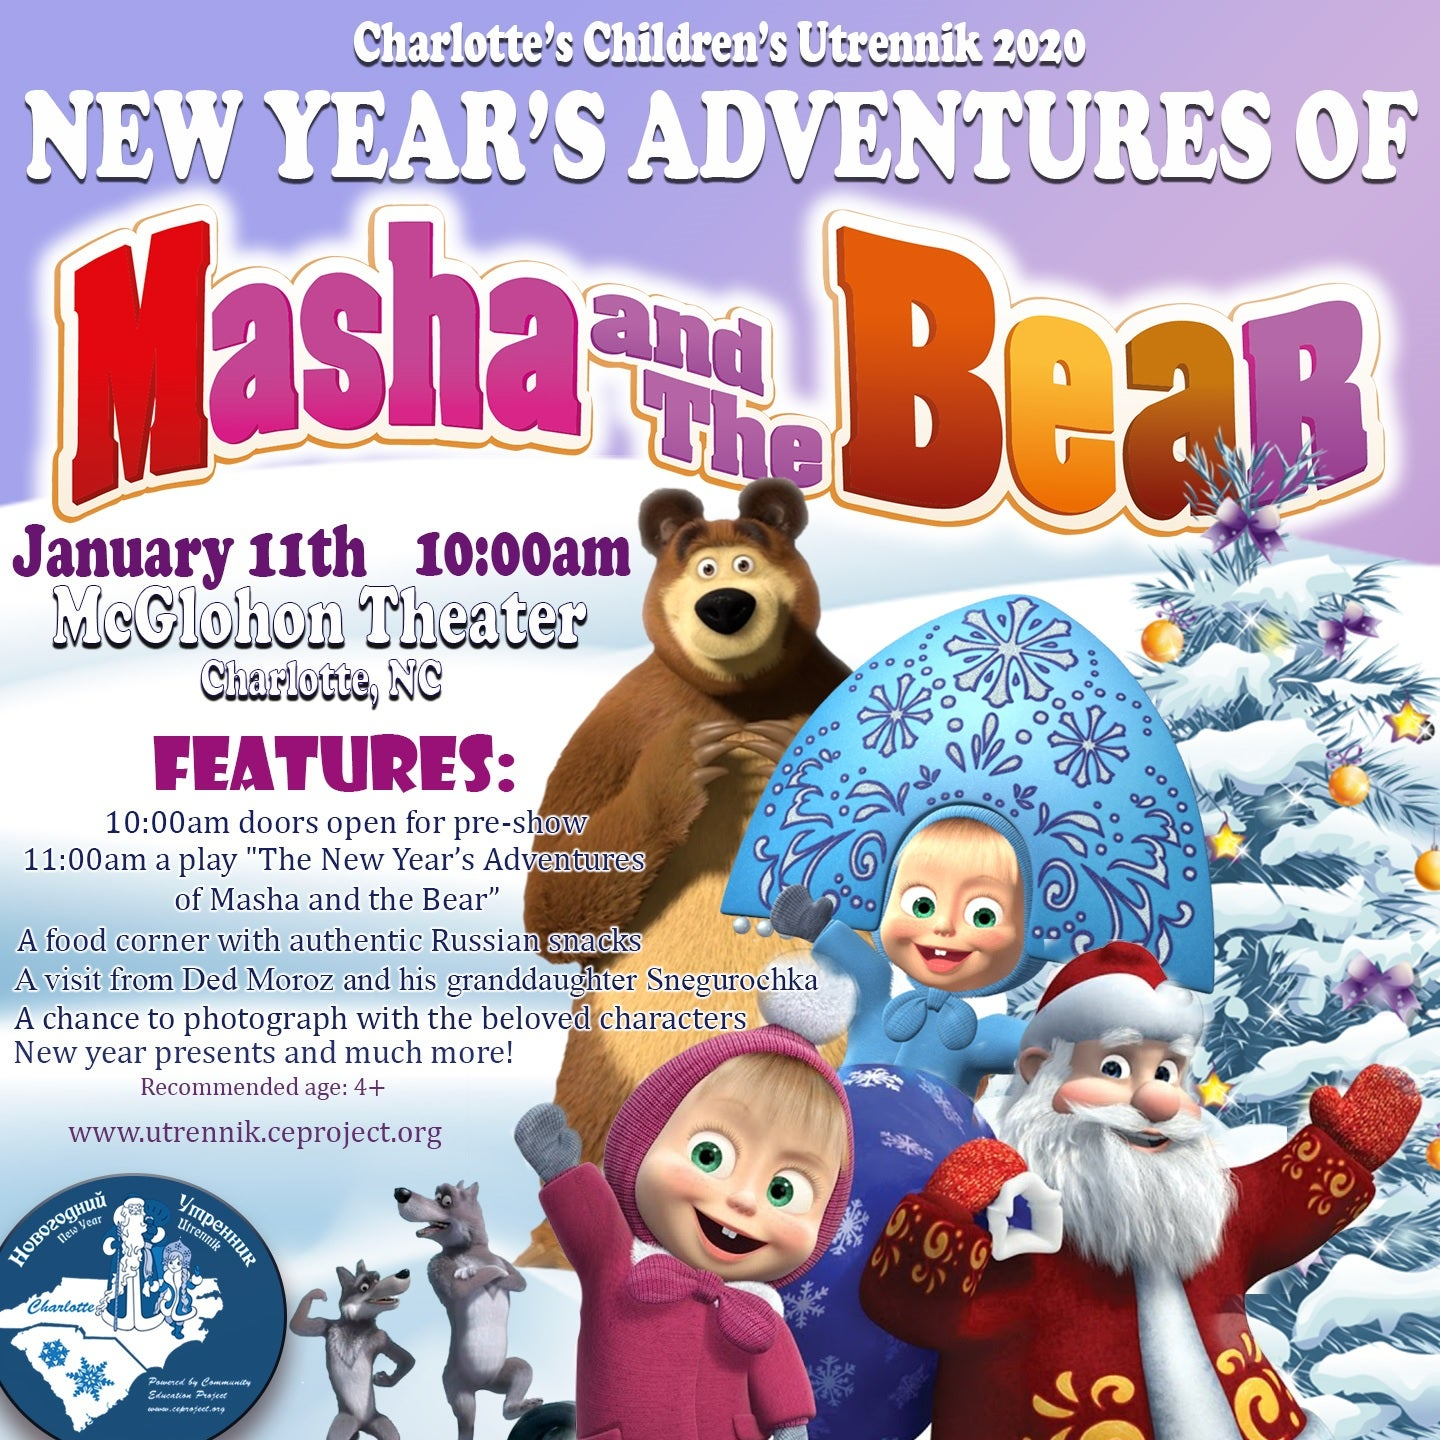 New Year Adventures of Masha and the Bear